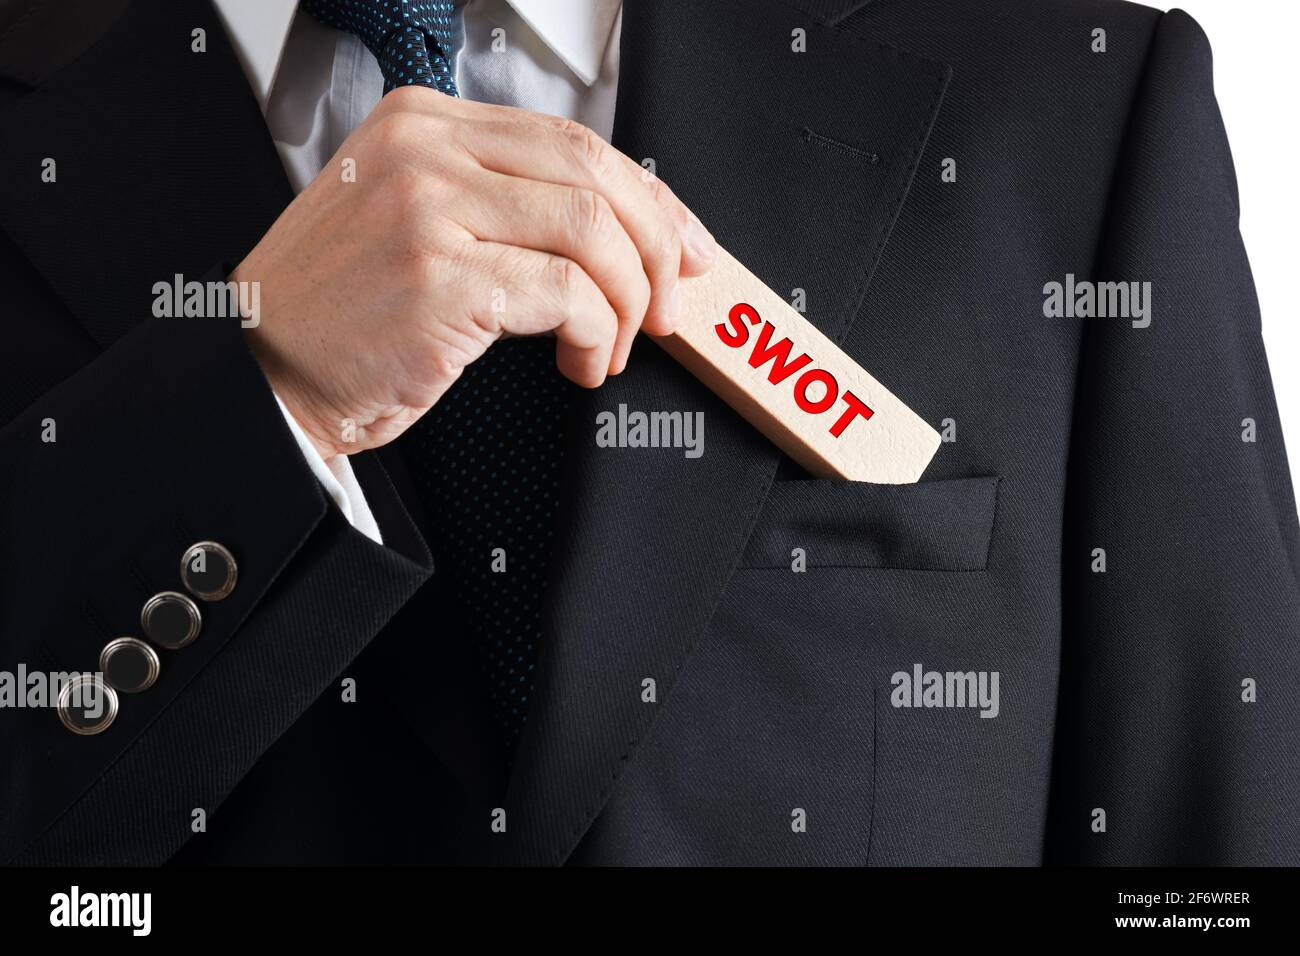 Businessman takes out a wooden block from his pocket with the word SWOT. Business marketing swot analysis concept. Stock Photo